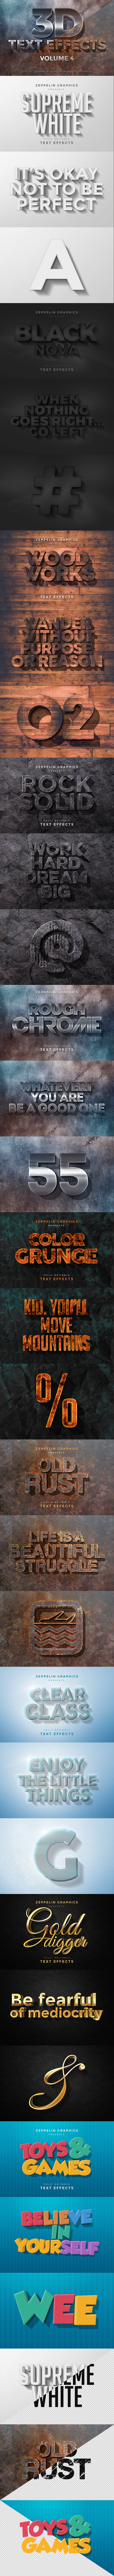 3D Text Effects Vol.4 - Text Effects Actions